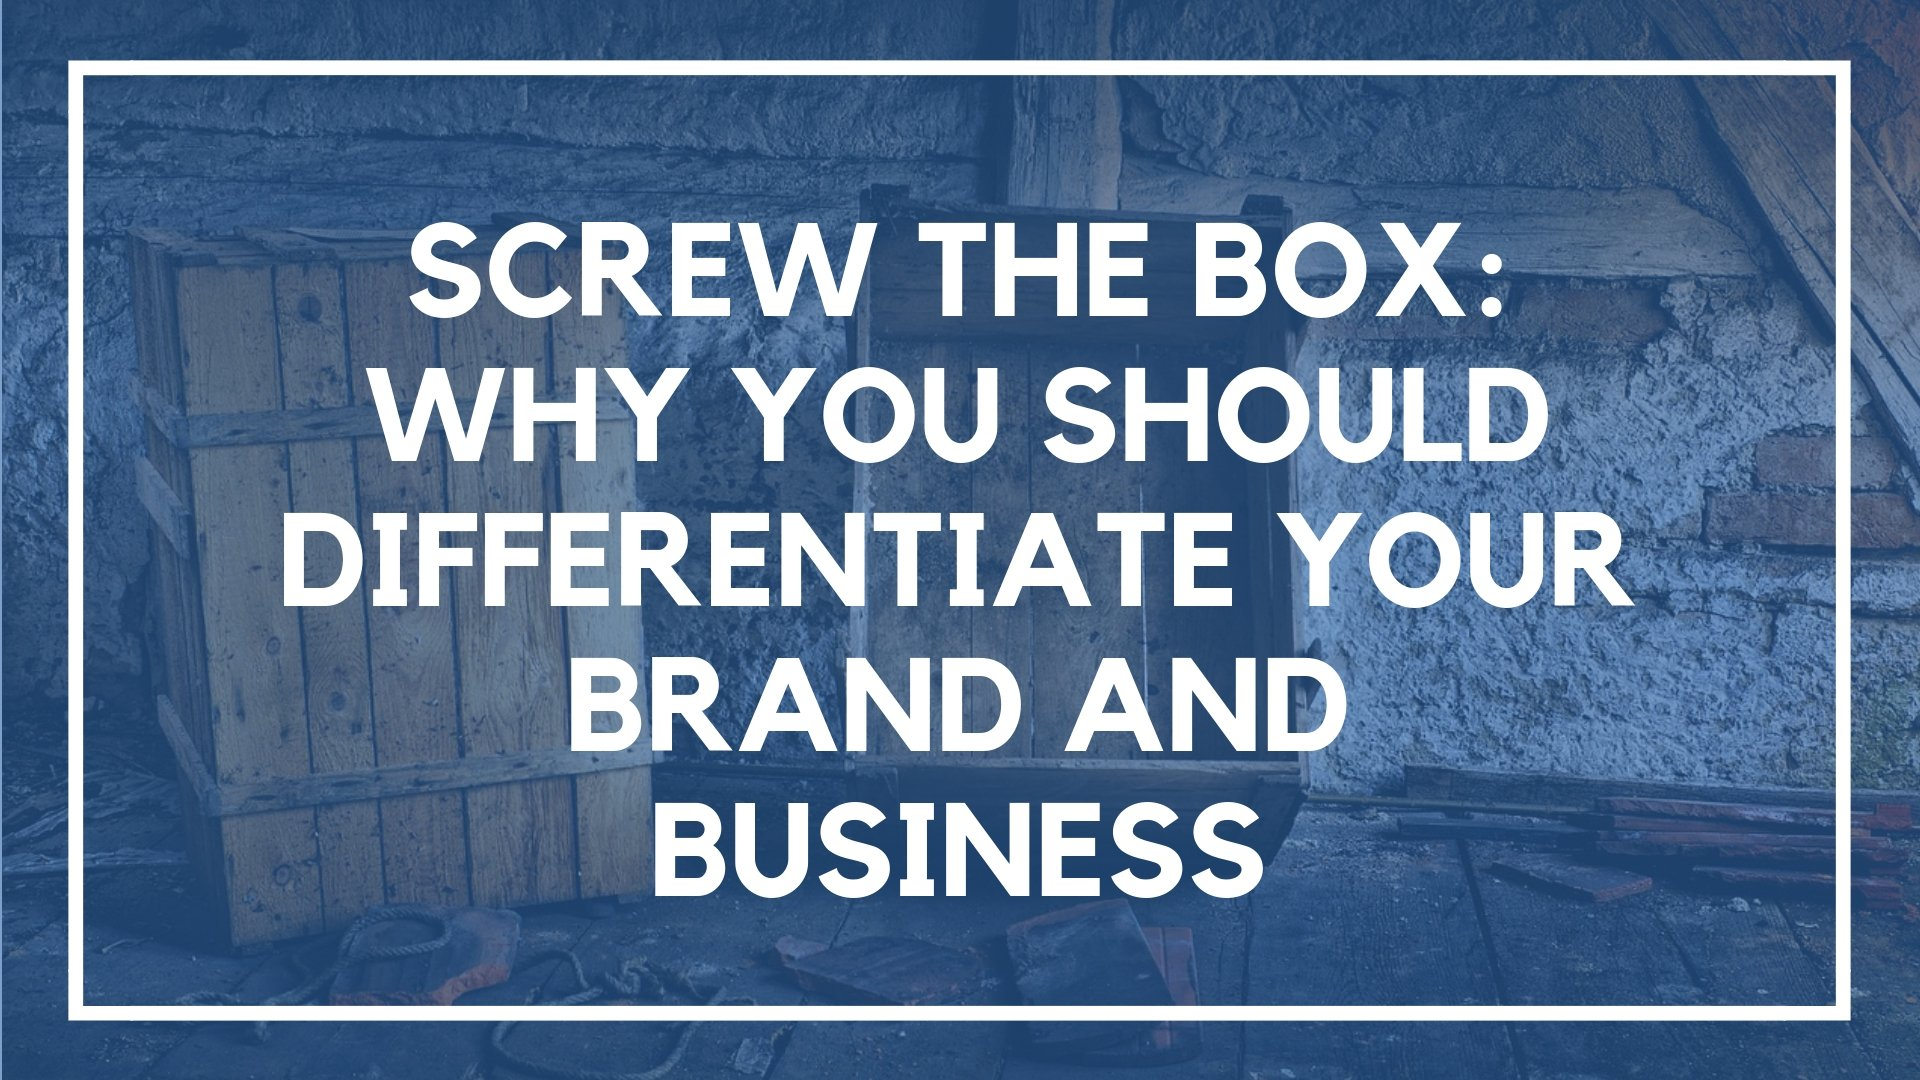 Screw the Box: Why You Should Differentiate Your Brand and Business